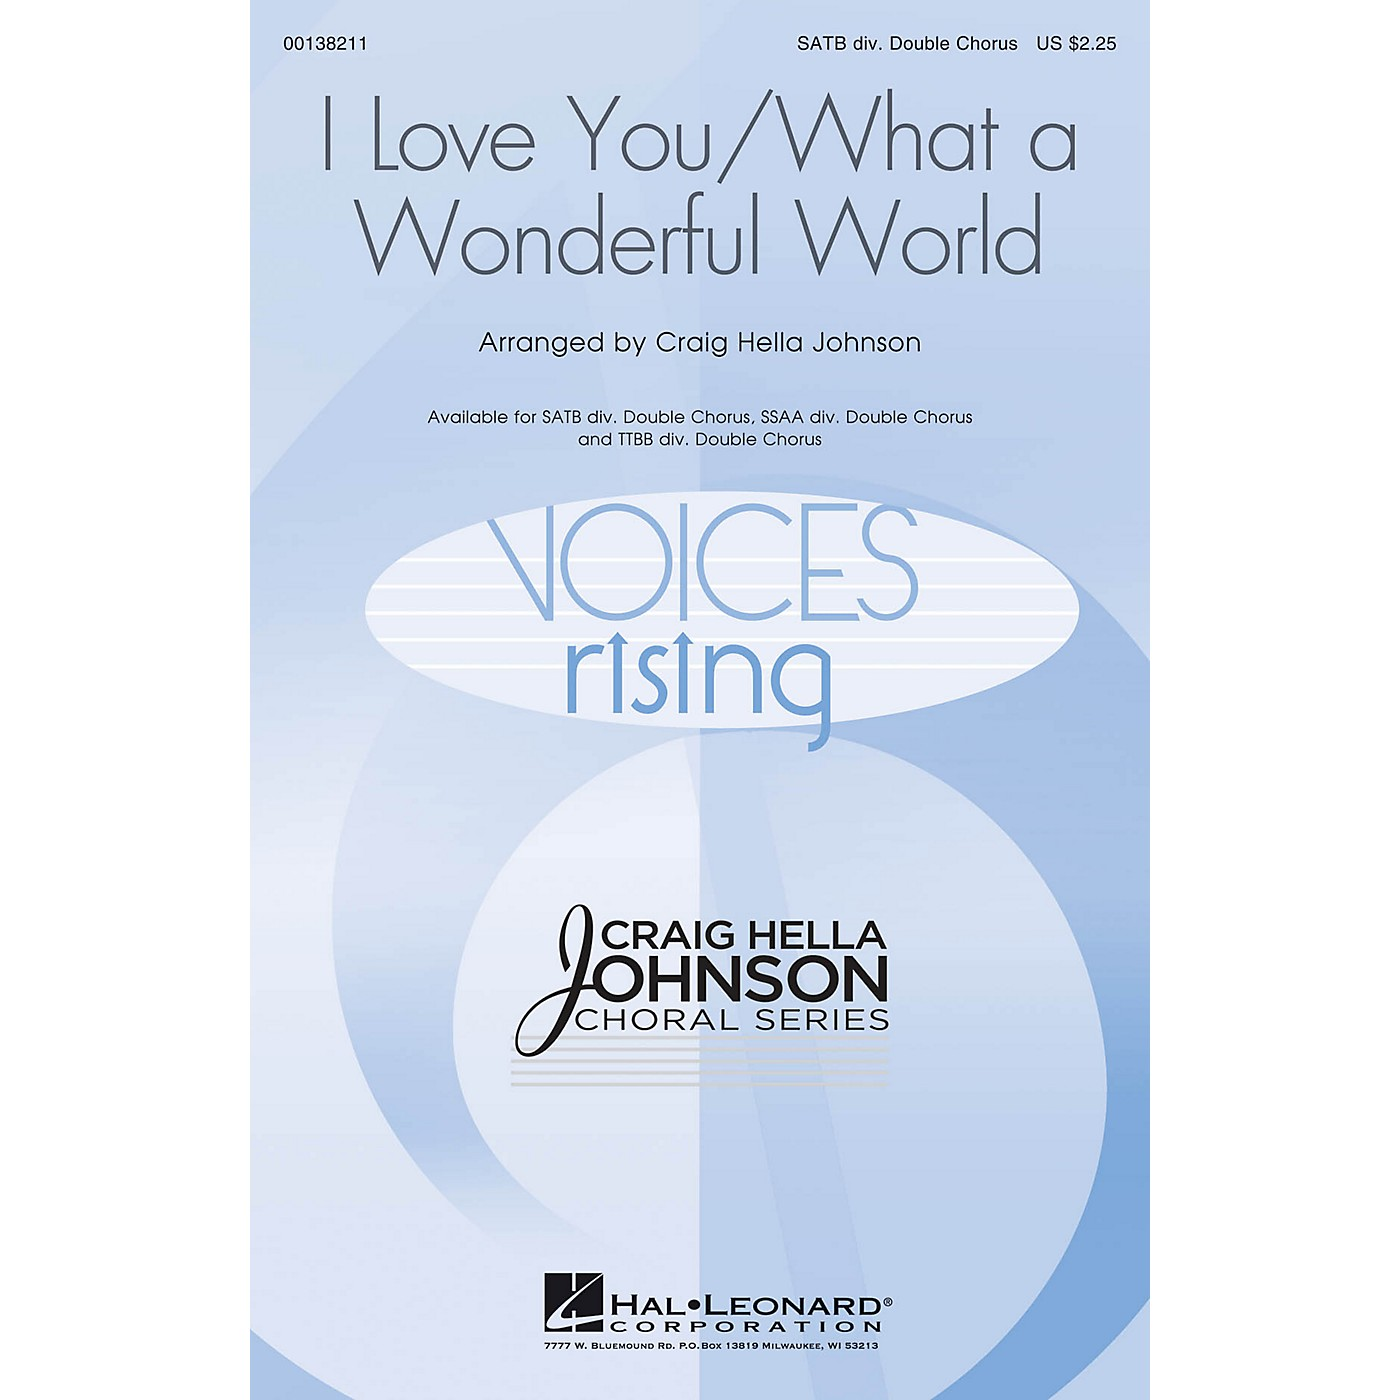 Hal Leonard I Love You/What a Wonderful World SSAA DIVISI DOUBLE CHORUS by Conspirare Arranged by Craig Hella Johnson thumbnail